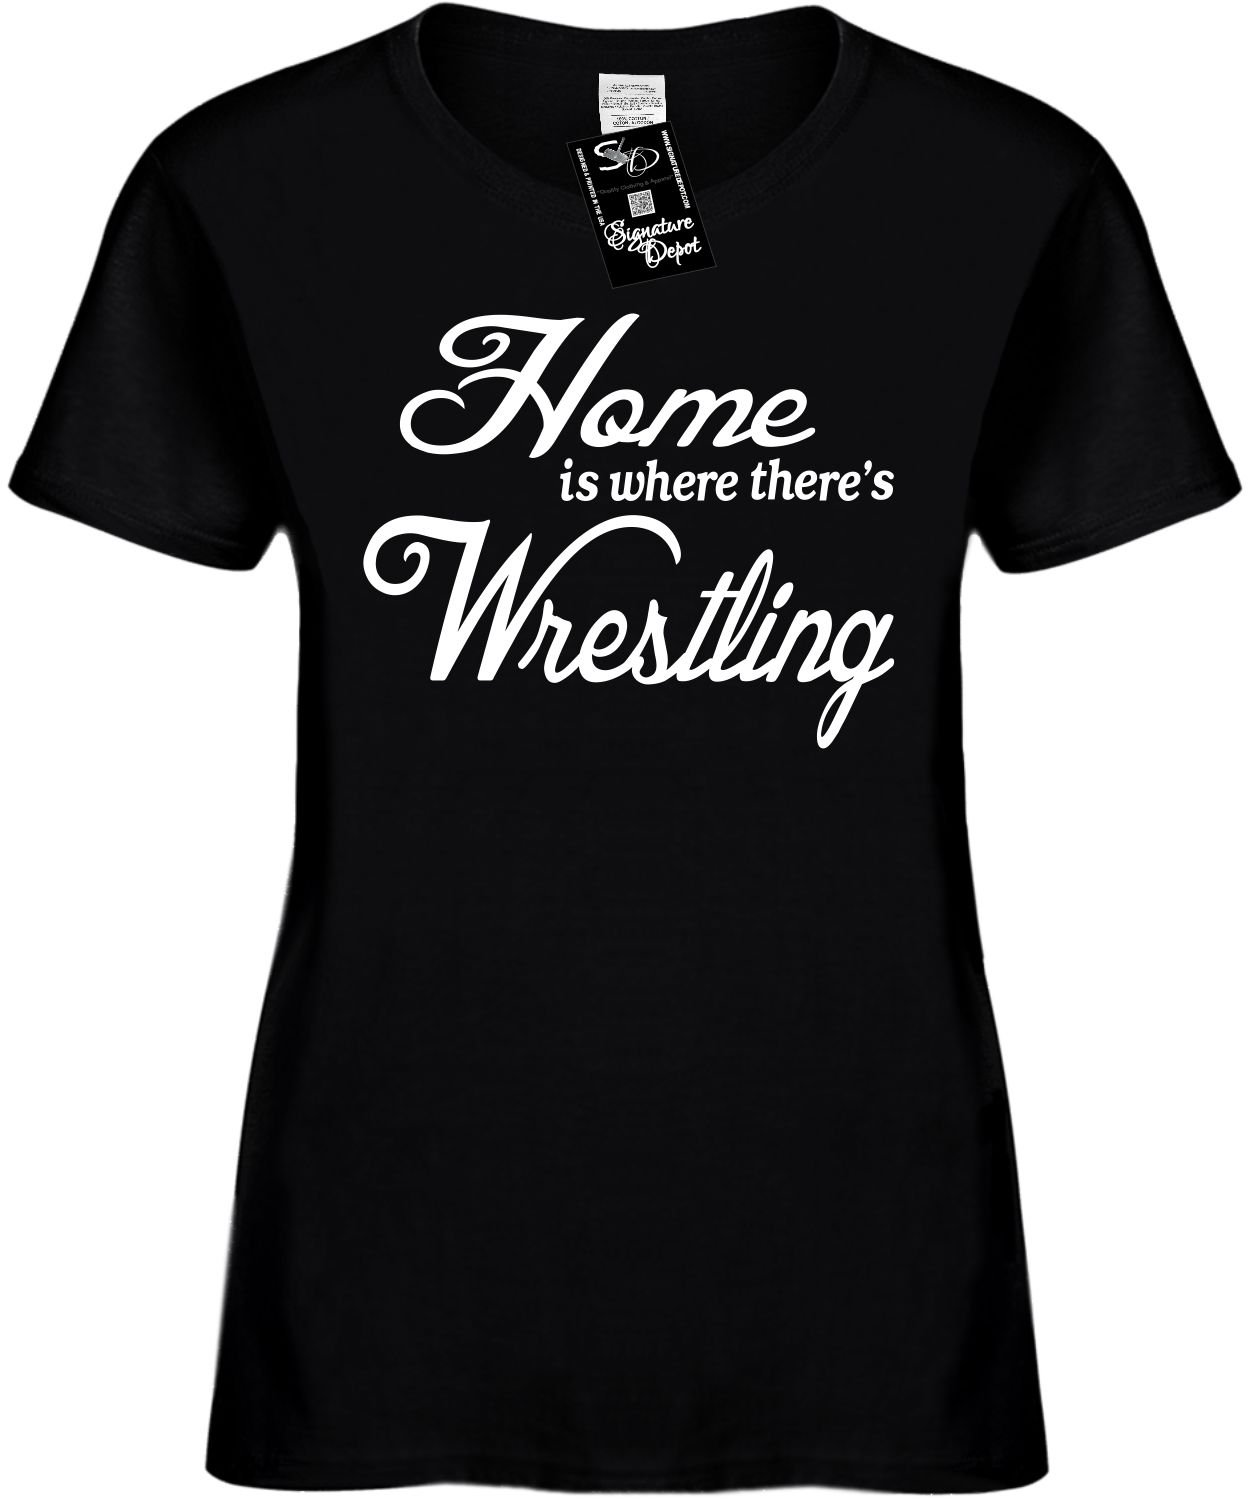 Women's Size XL Funny T-Shirt (Home Is Where There's Wrestling) Ladies Shirt by Signature Depot